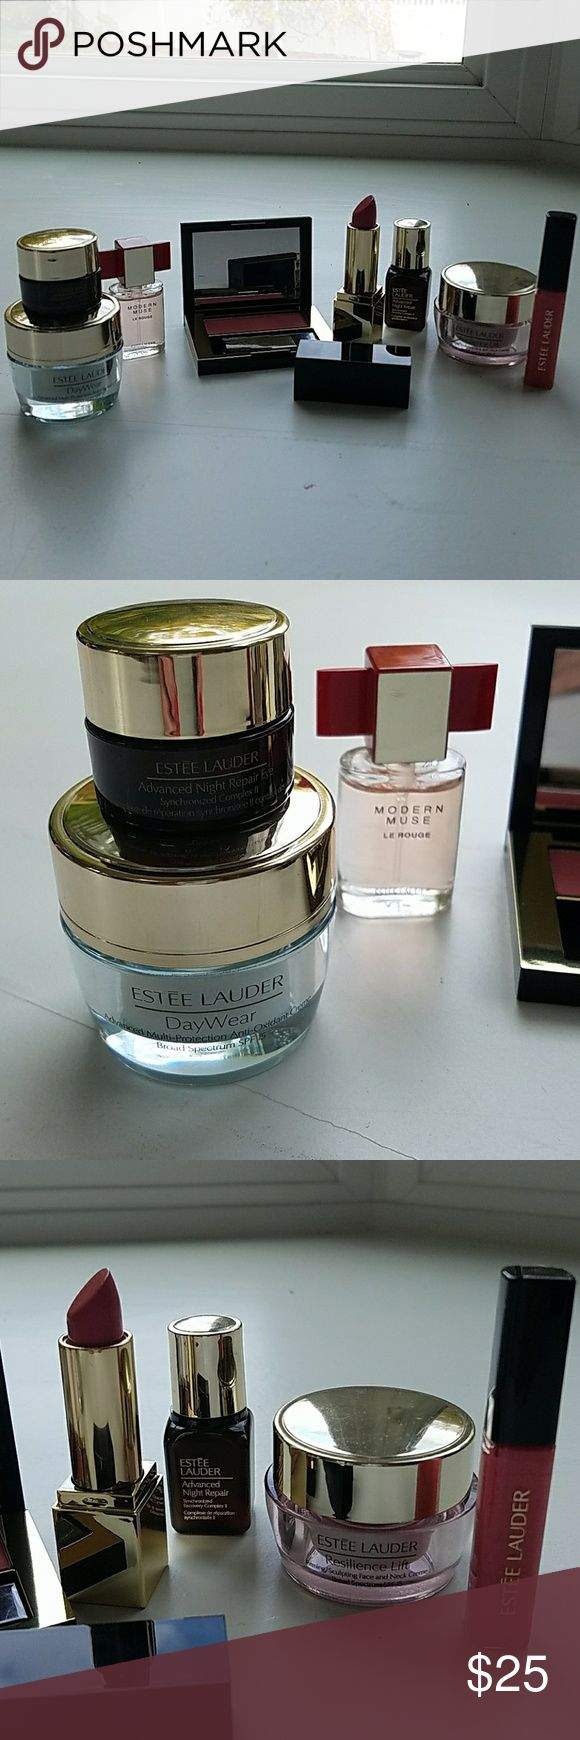 Estee Lauder makeup set Estee Lauder Day wear, advanced night repair eyes, advanced night repair, resilence lift, pure color lipstick full size color is Powerful, small bottle of Modern Muse, Pink Kiss Blush, and suggestive Kiss Lip gloss. Estee Lauder Other